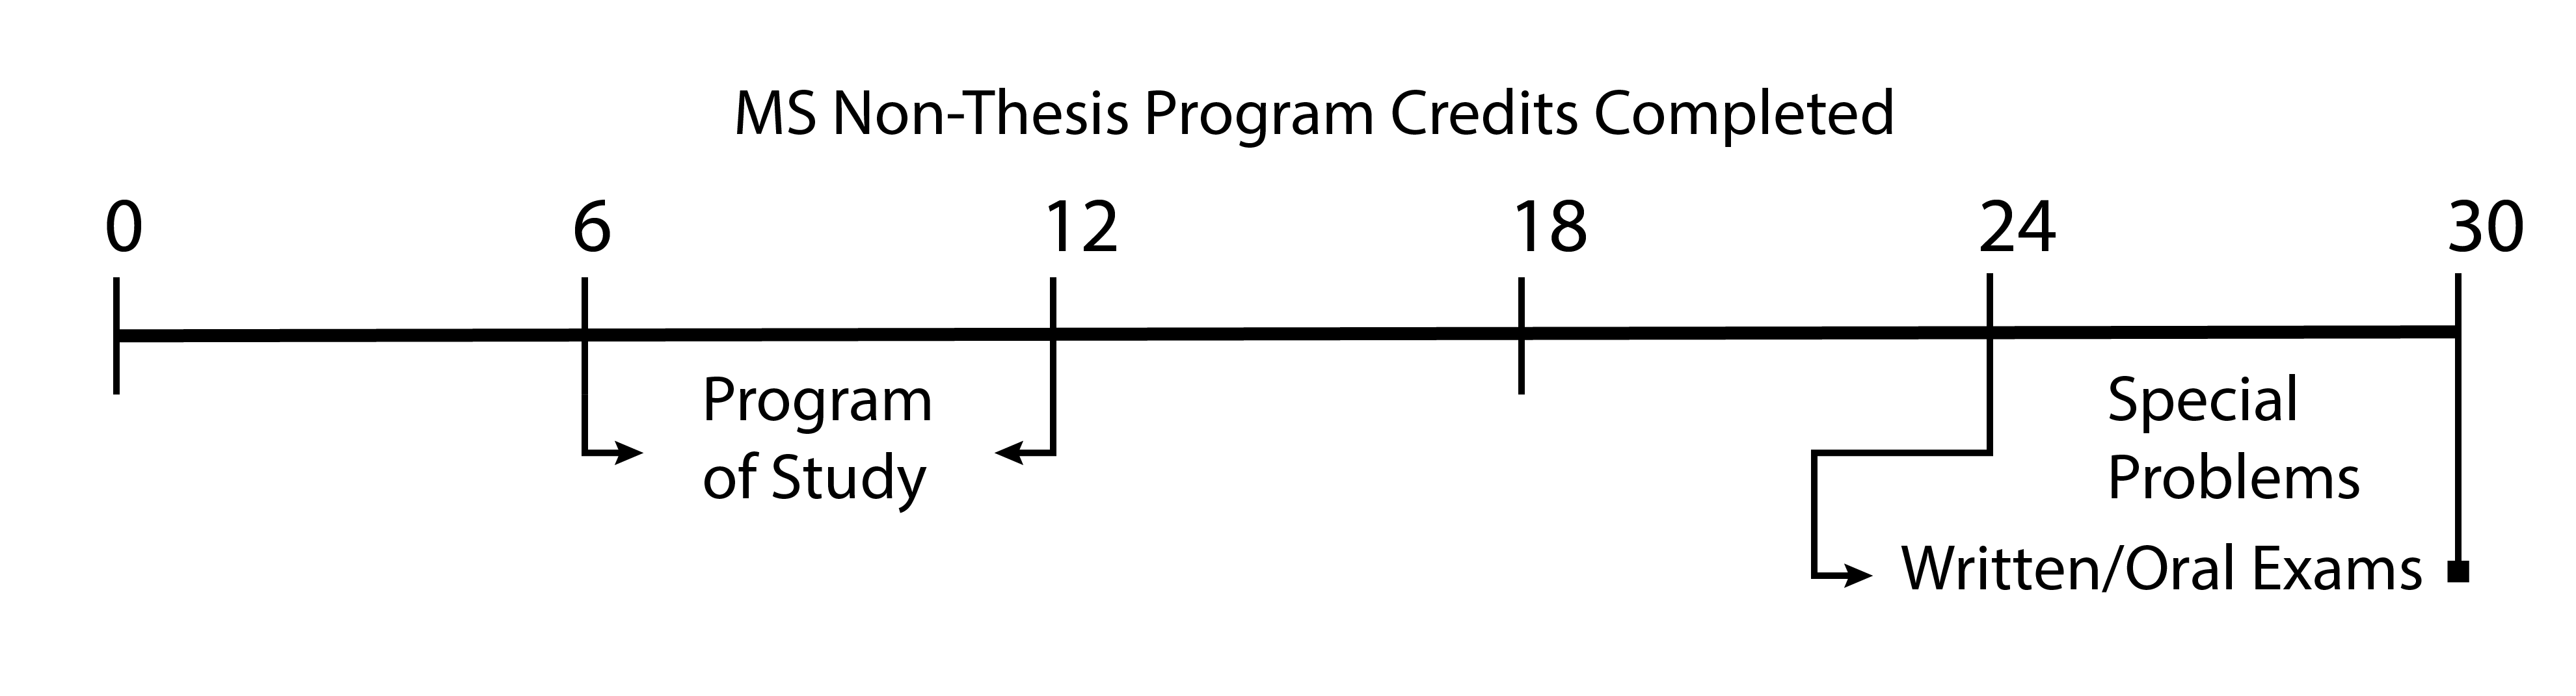 Thesis defense advice nomination form